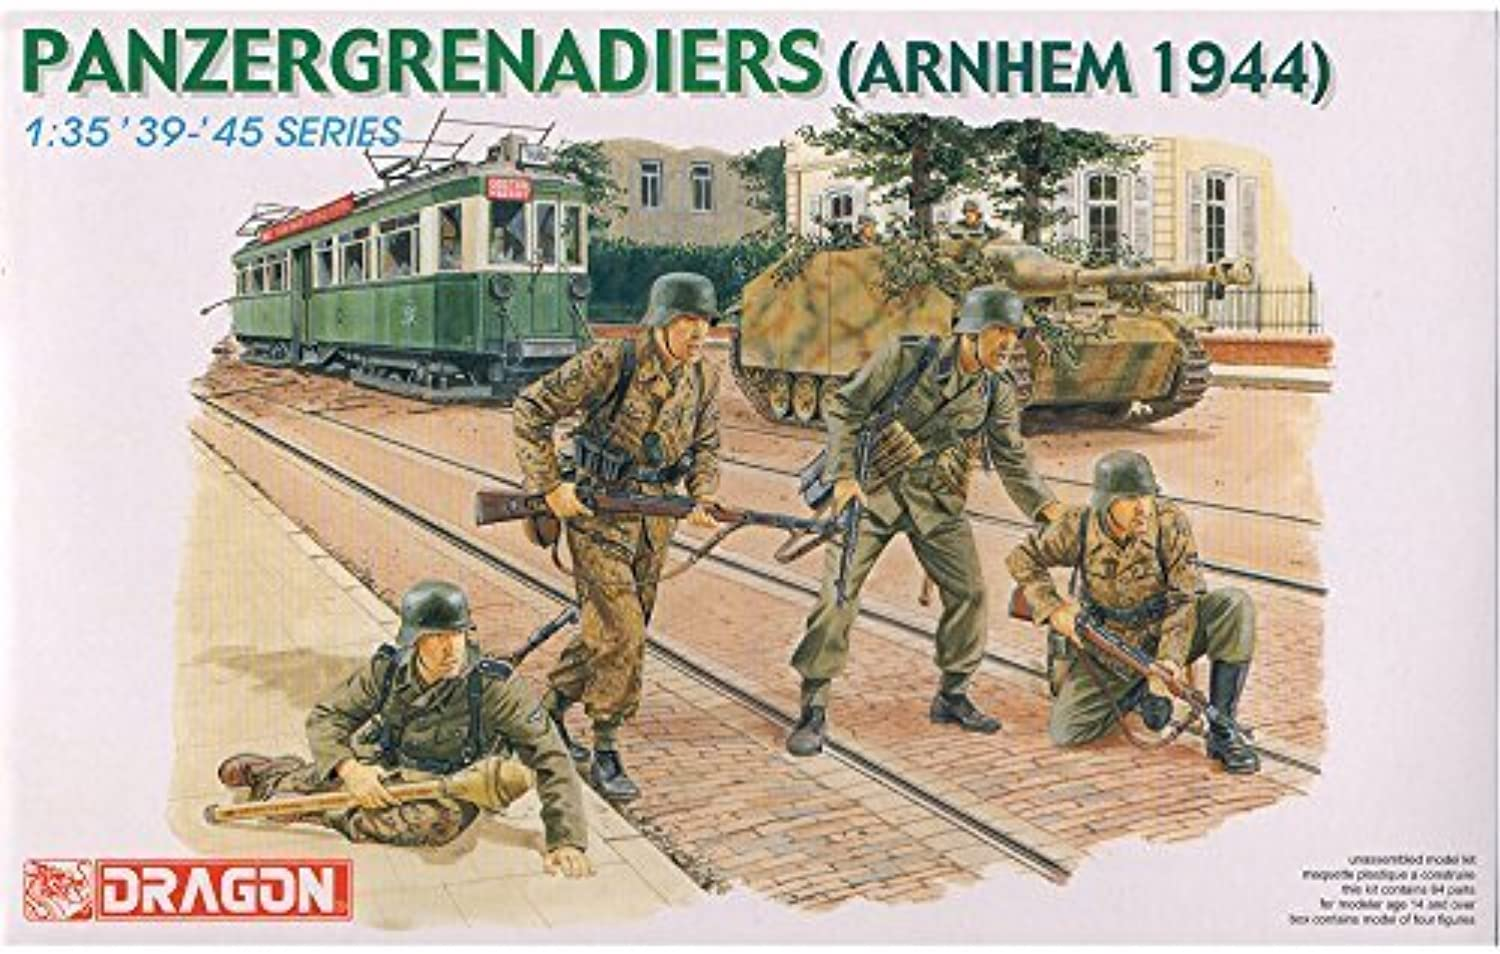 Dragon 1 35 Panzergrenadiers (arnhem 1944)   6161 by Dragon Models USA